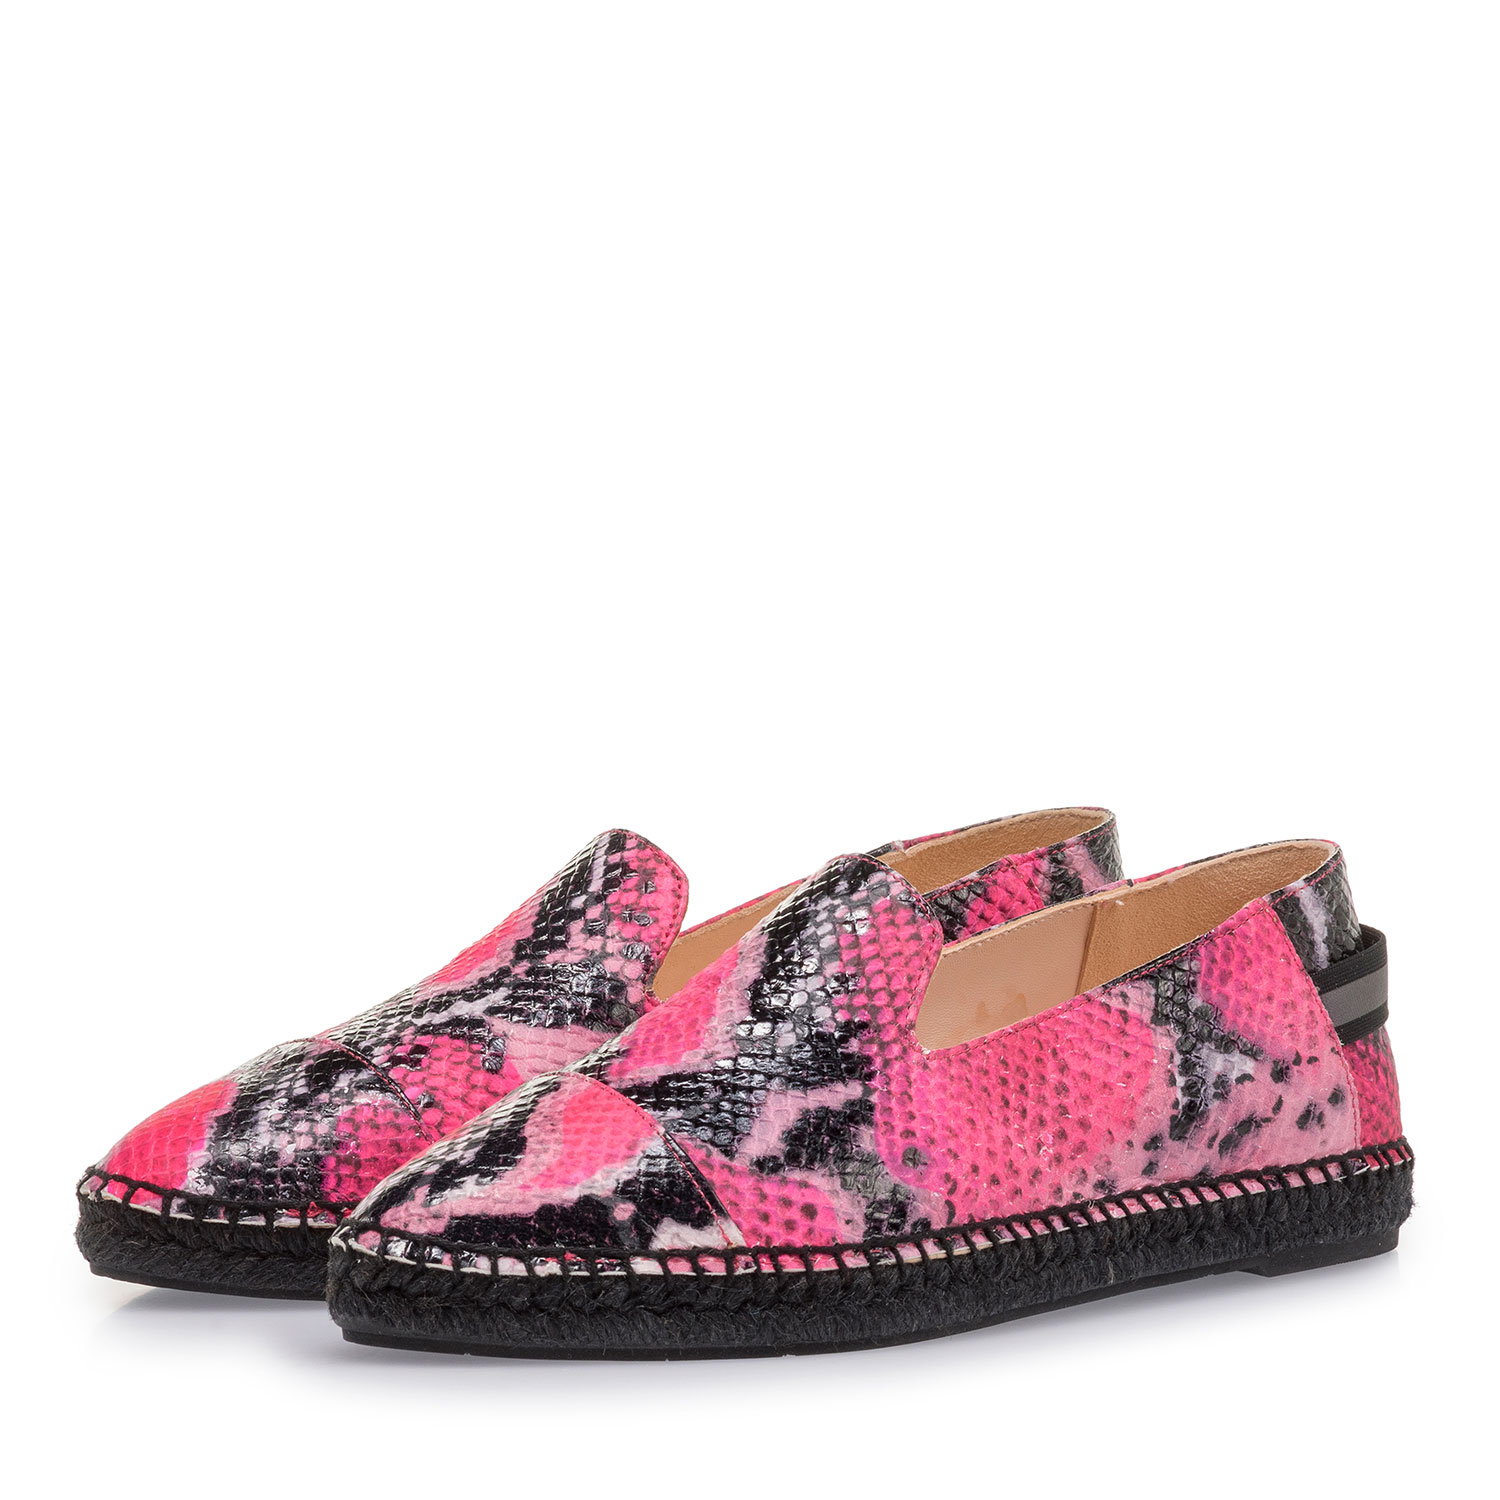 85420/04 - Fluorescent pink espadrilles with snake print